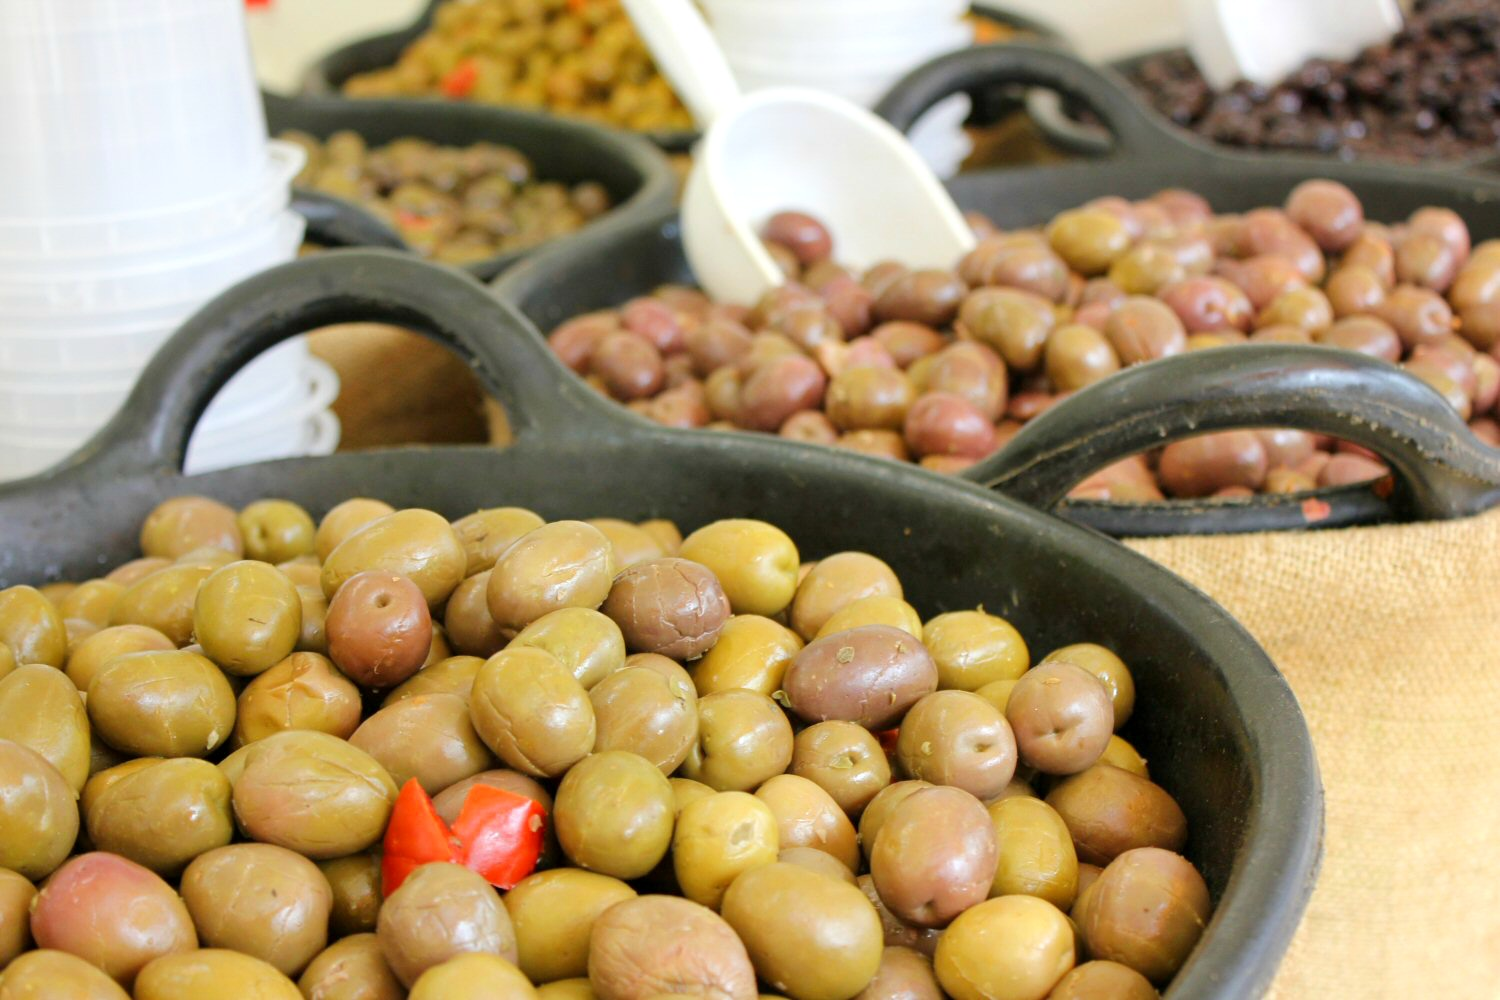 Olives at a market. My photo tour of Costa Barcelona